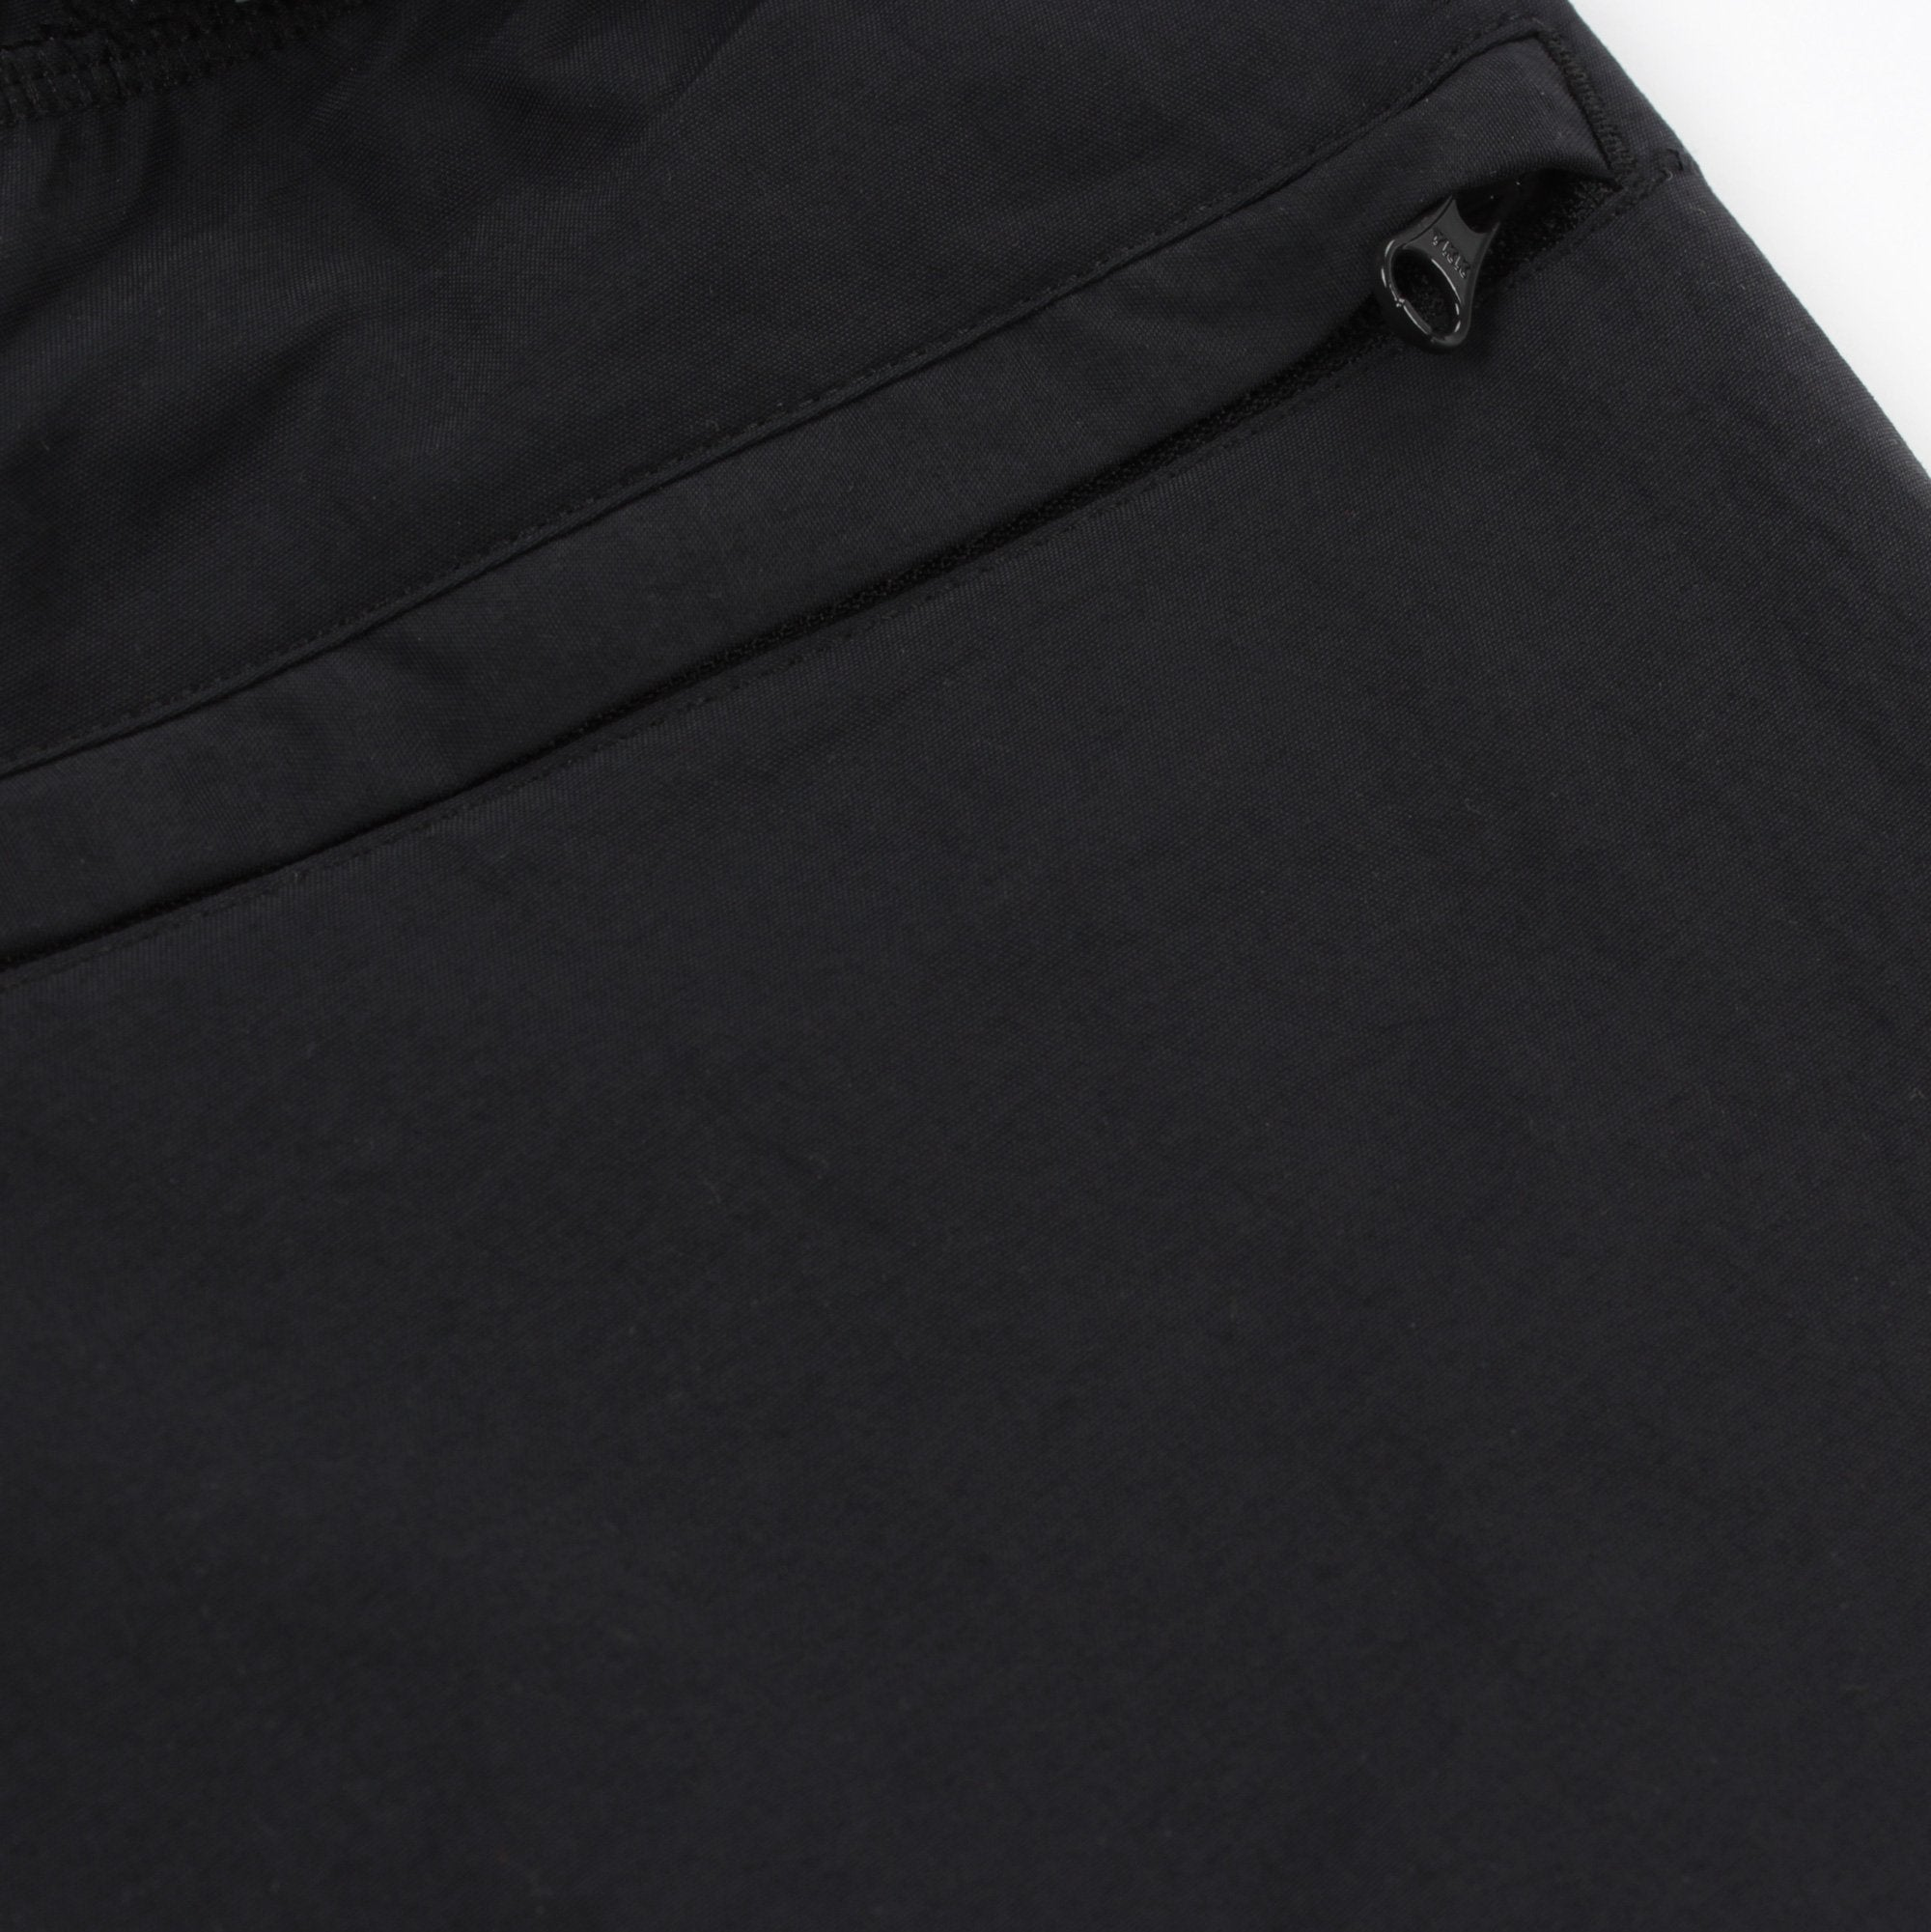 Adidas Standard Wind Pant Product Photo #3